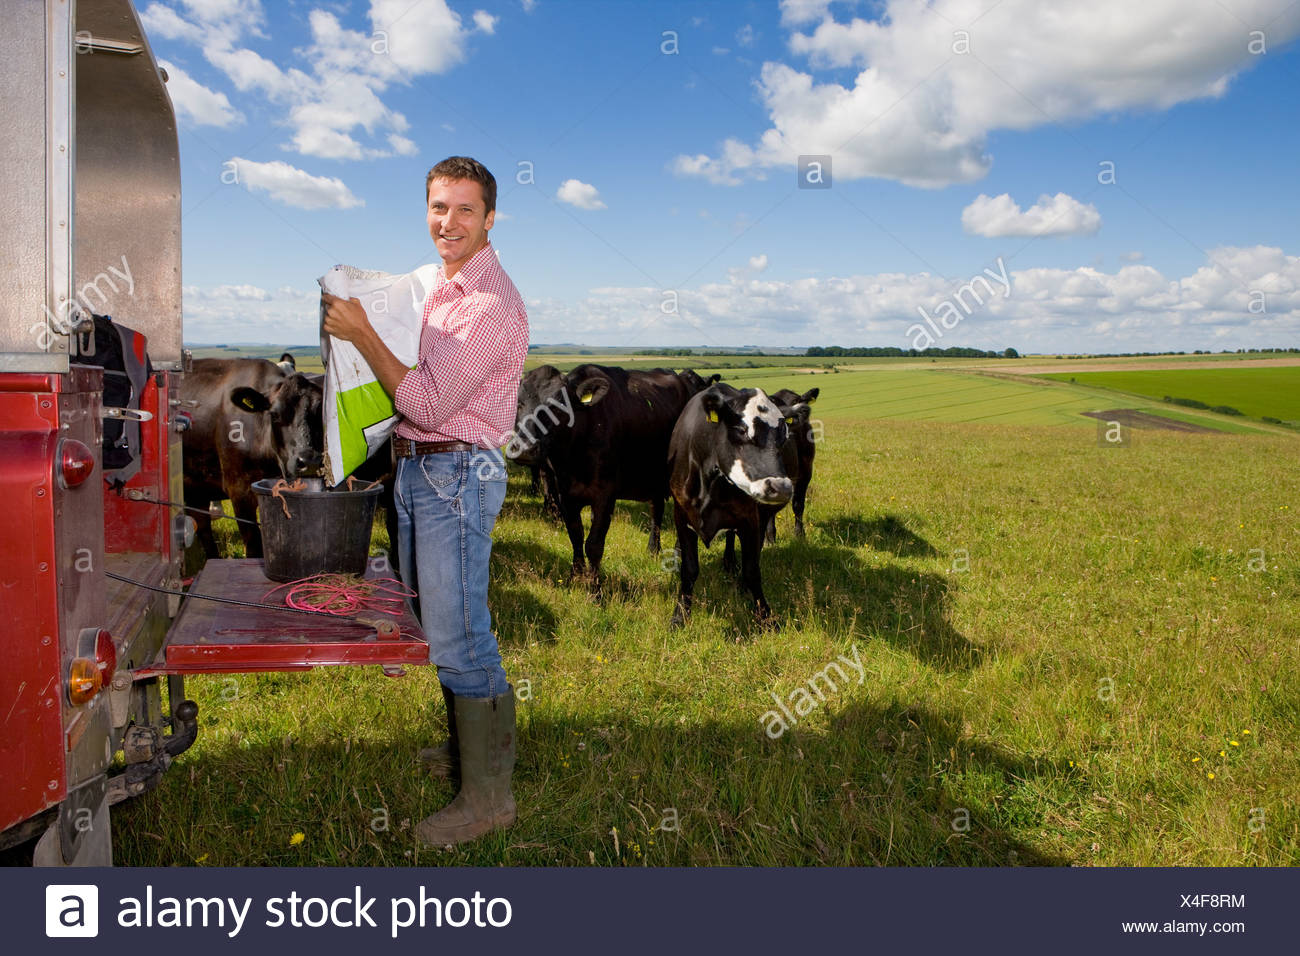 Portrait of farmer preparing feed for cattle on truck bed in sunny rural field - Stock Image